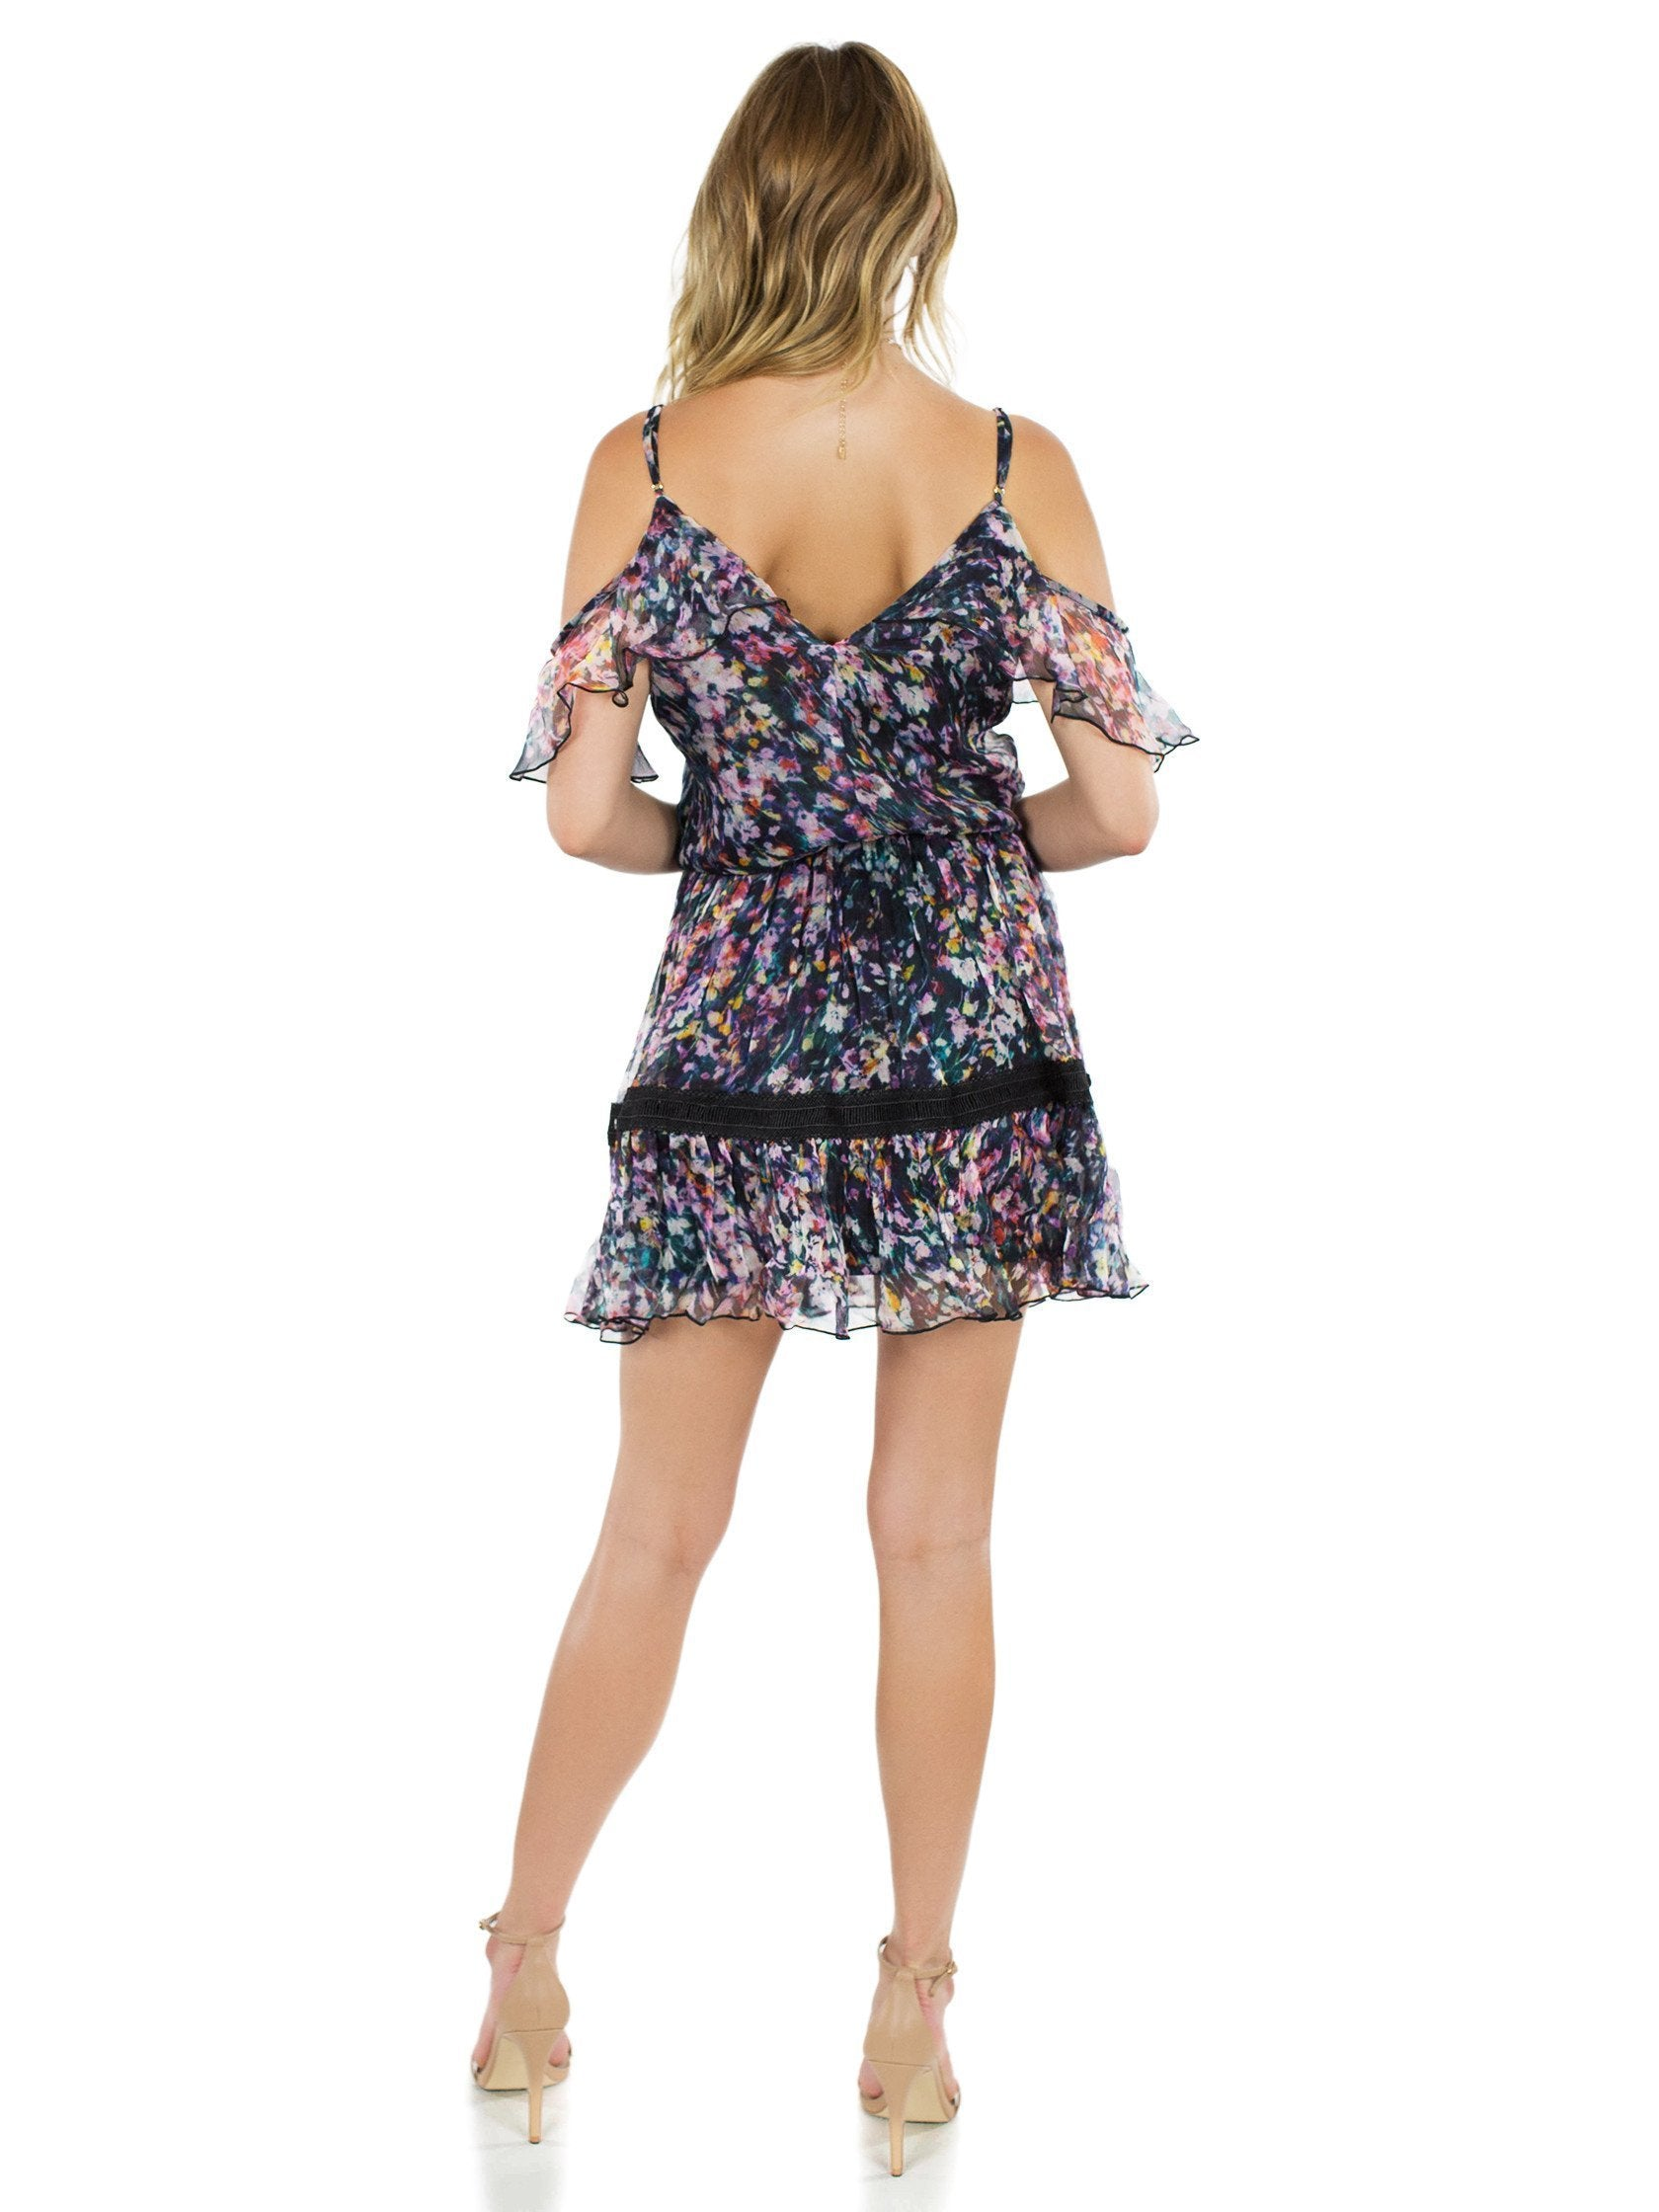 Women wearing a dress rental from Karina Grimaldi called Aiden Print Mini Dress